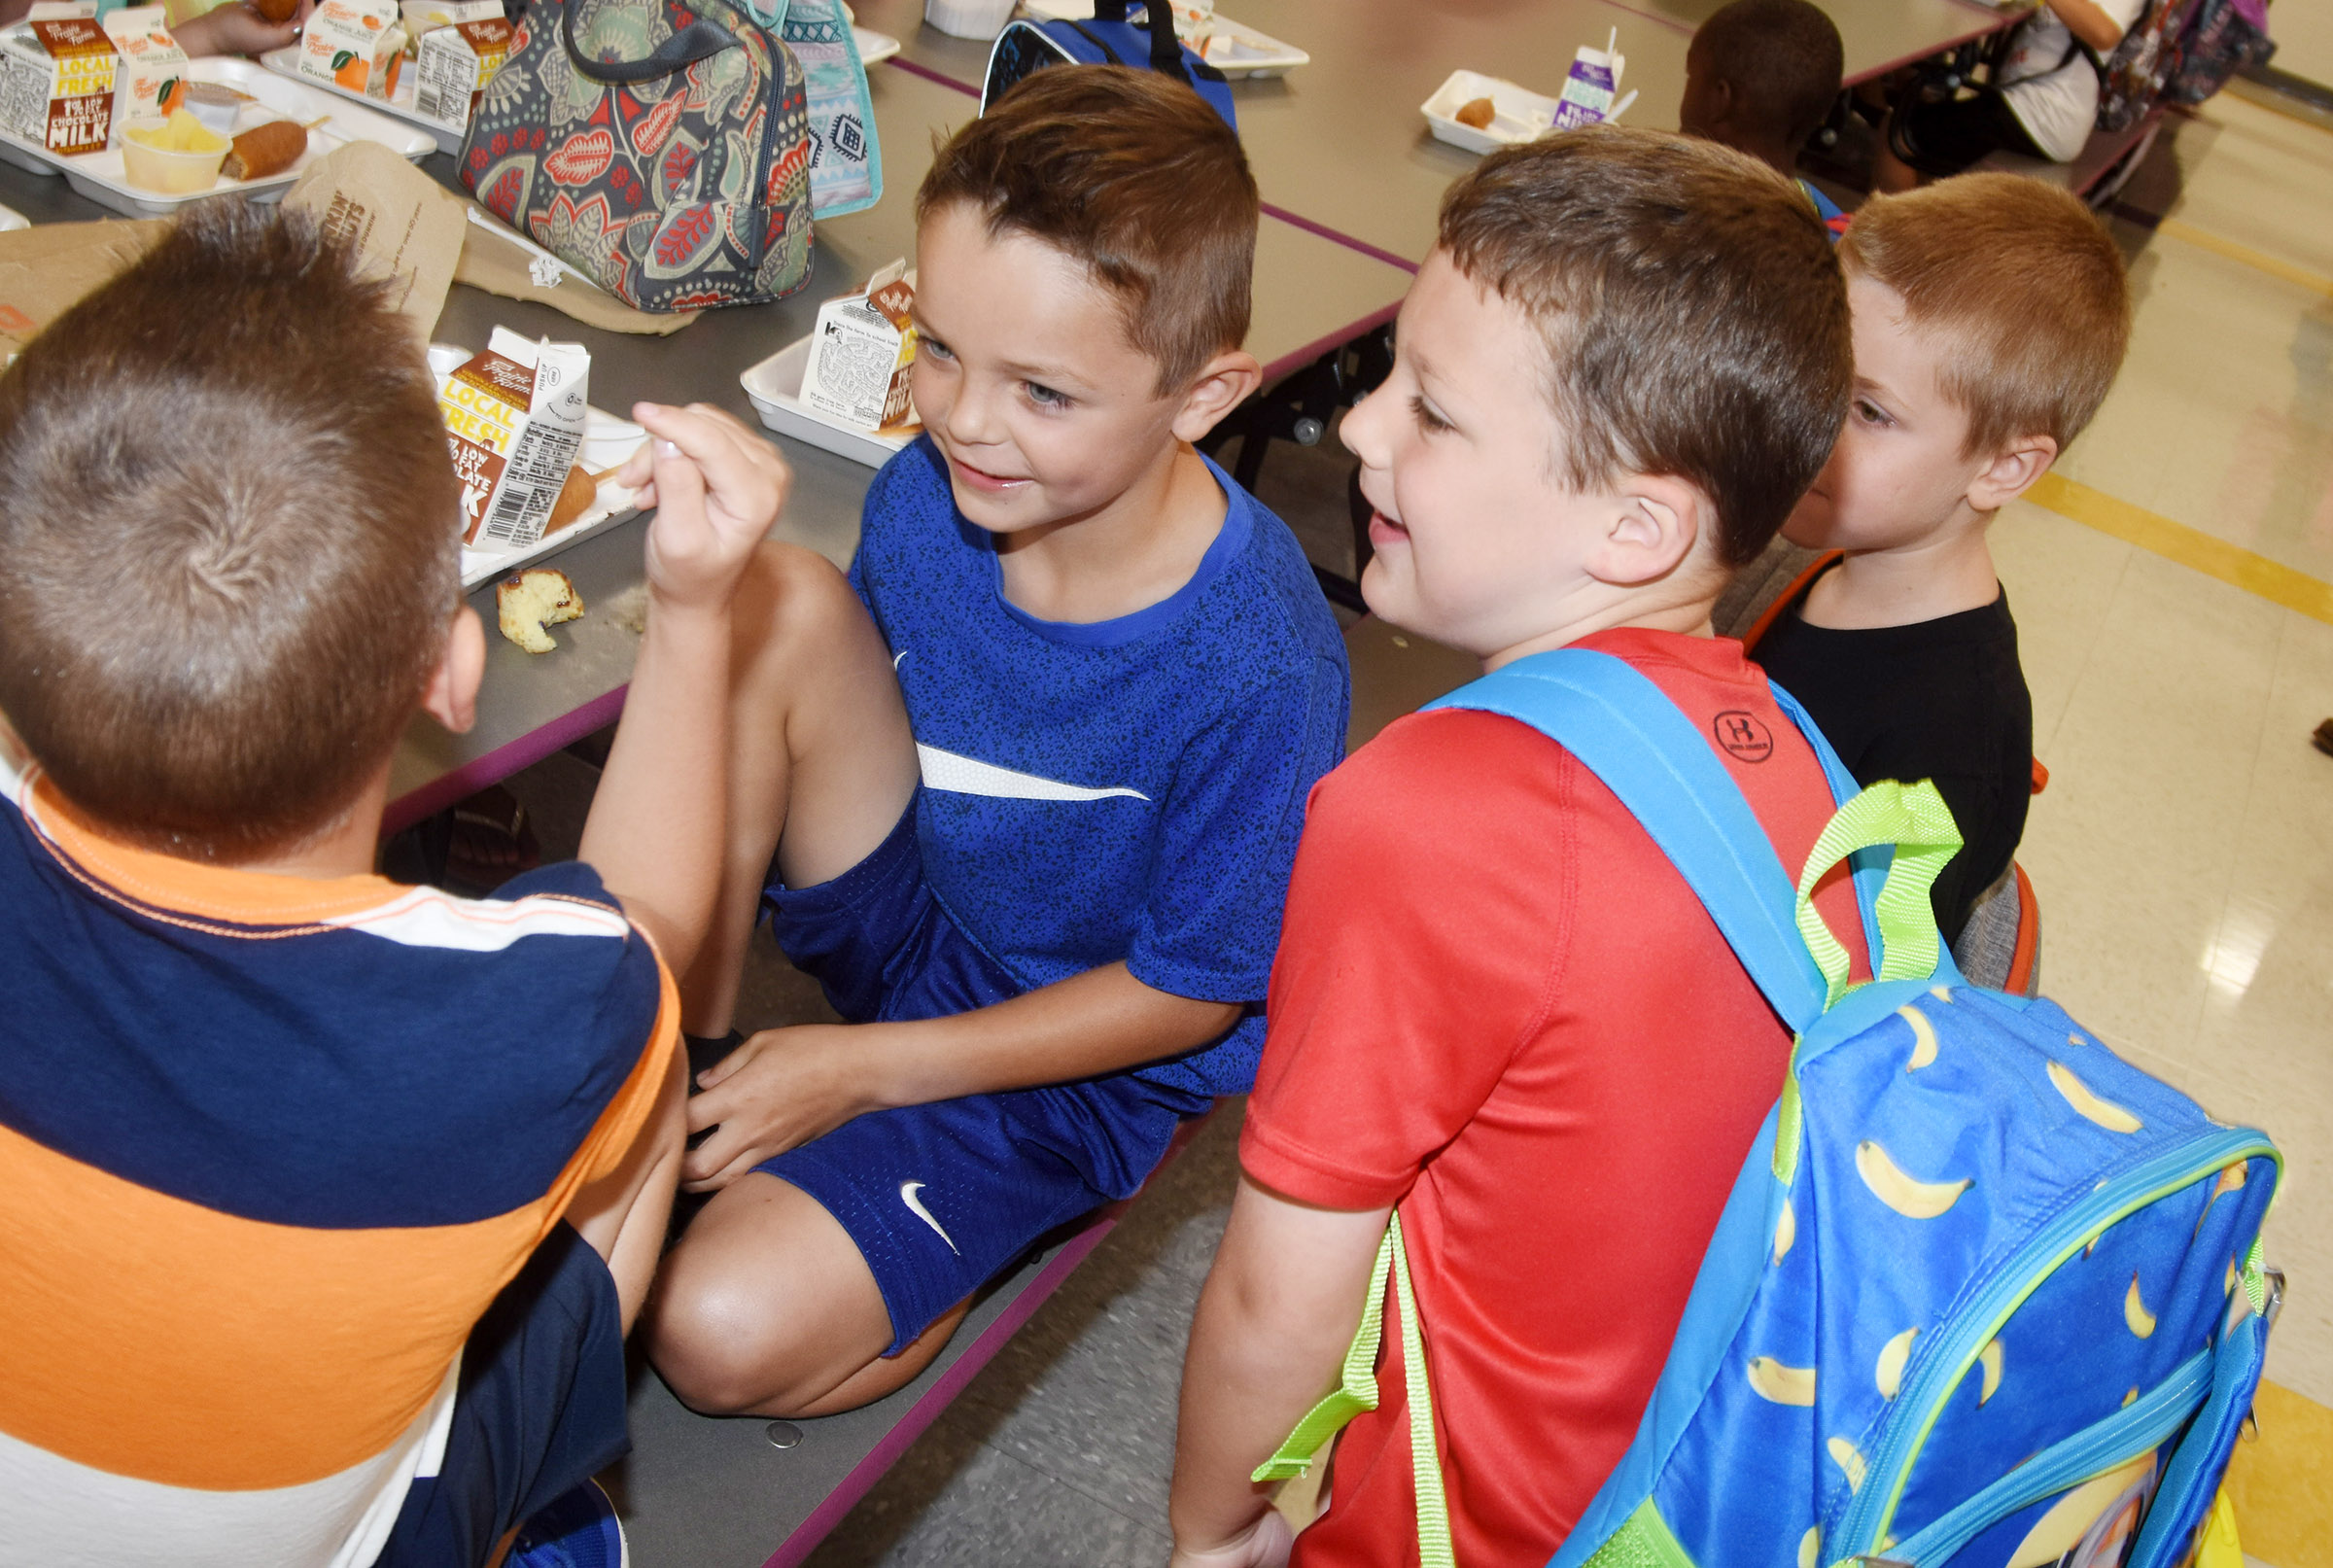 From left, Campbellsville Elementary School first-graders Cash Davis, Hayden Goff, Kyler Wilson and Alex Newcomb talk as they eat breakfast before school.